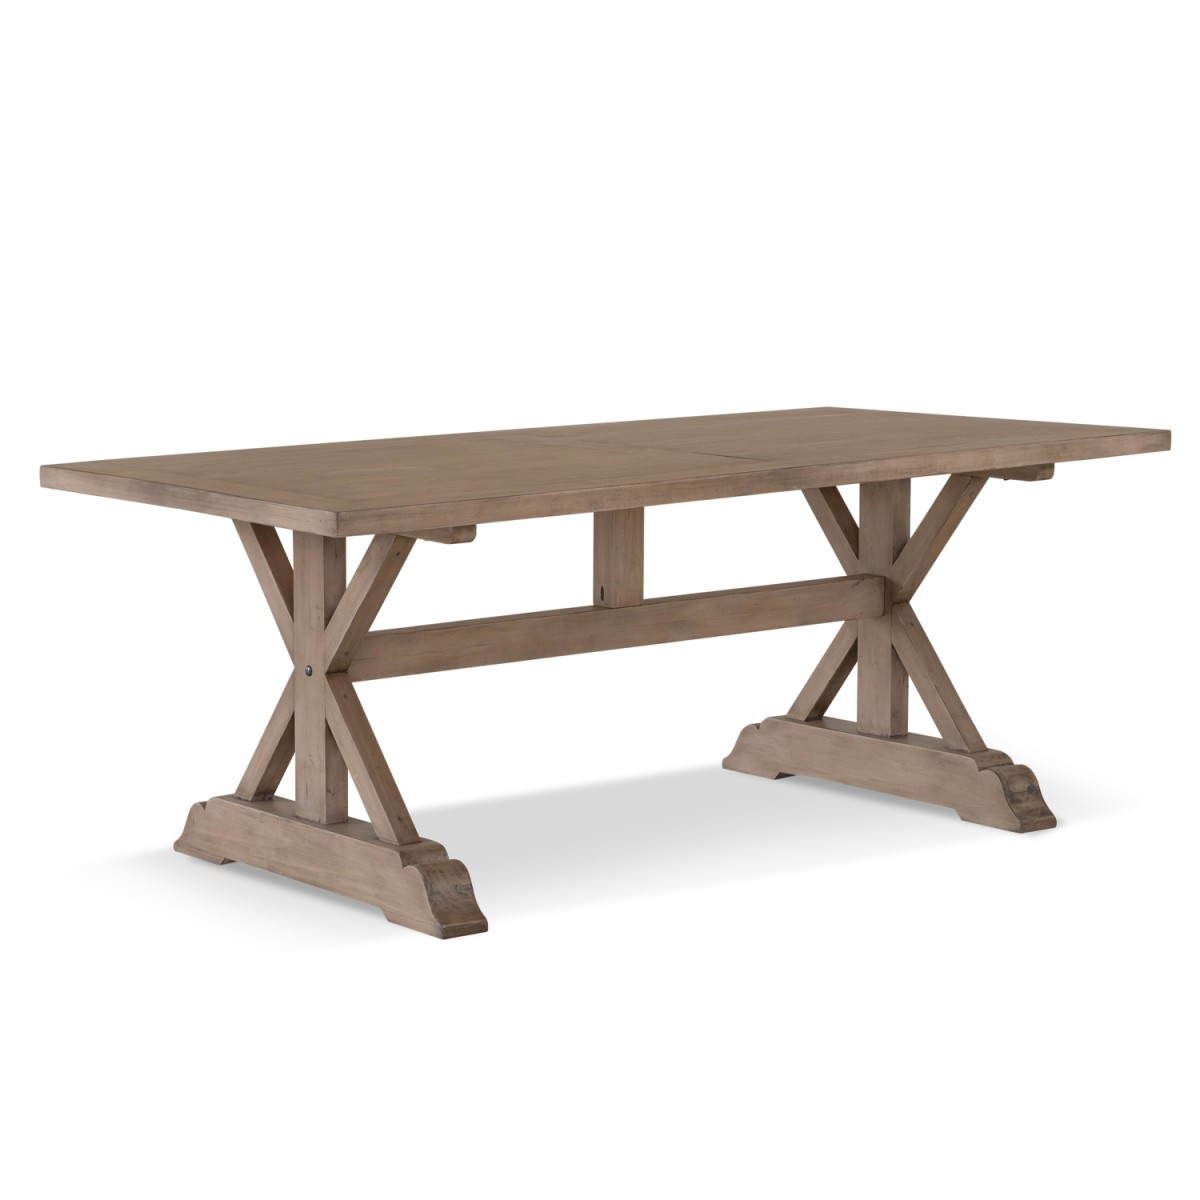 Table à manger Bois Marron 200x100x76cm